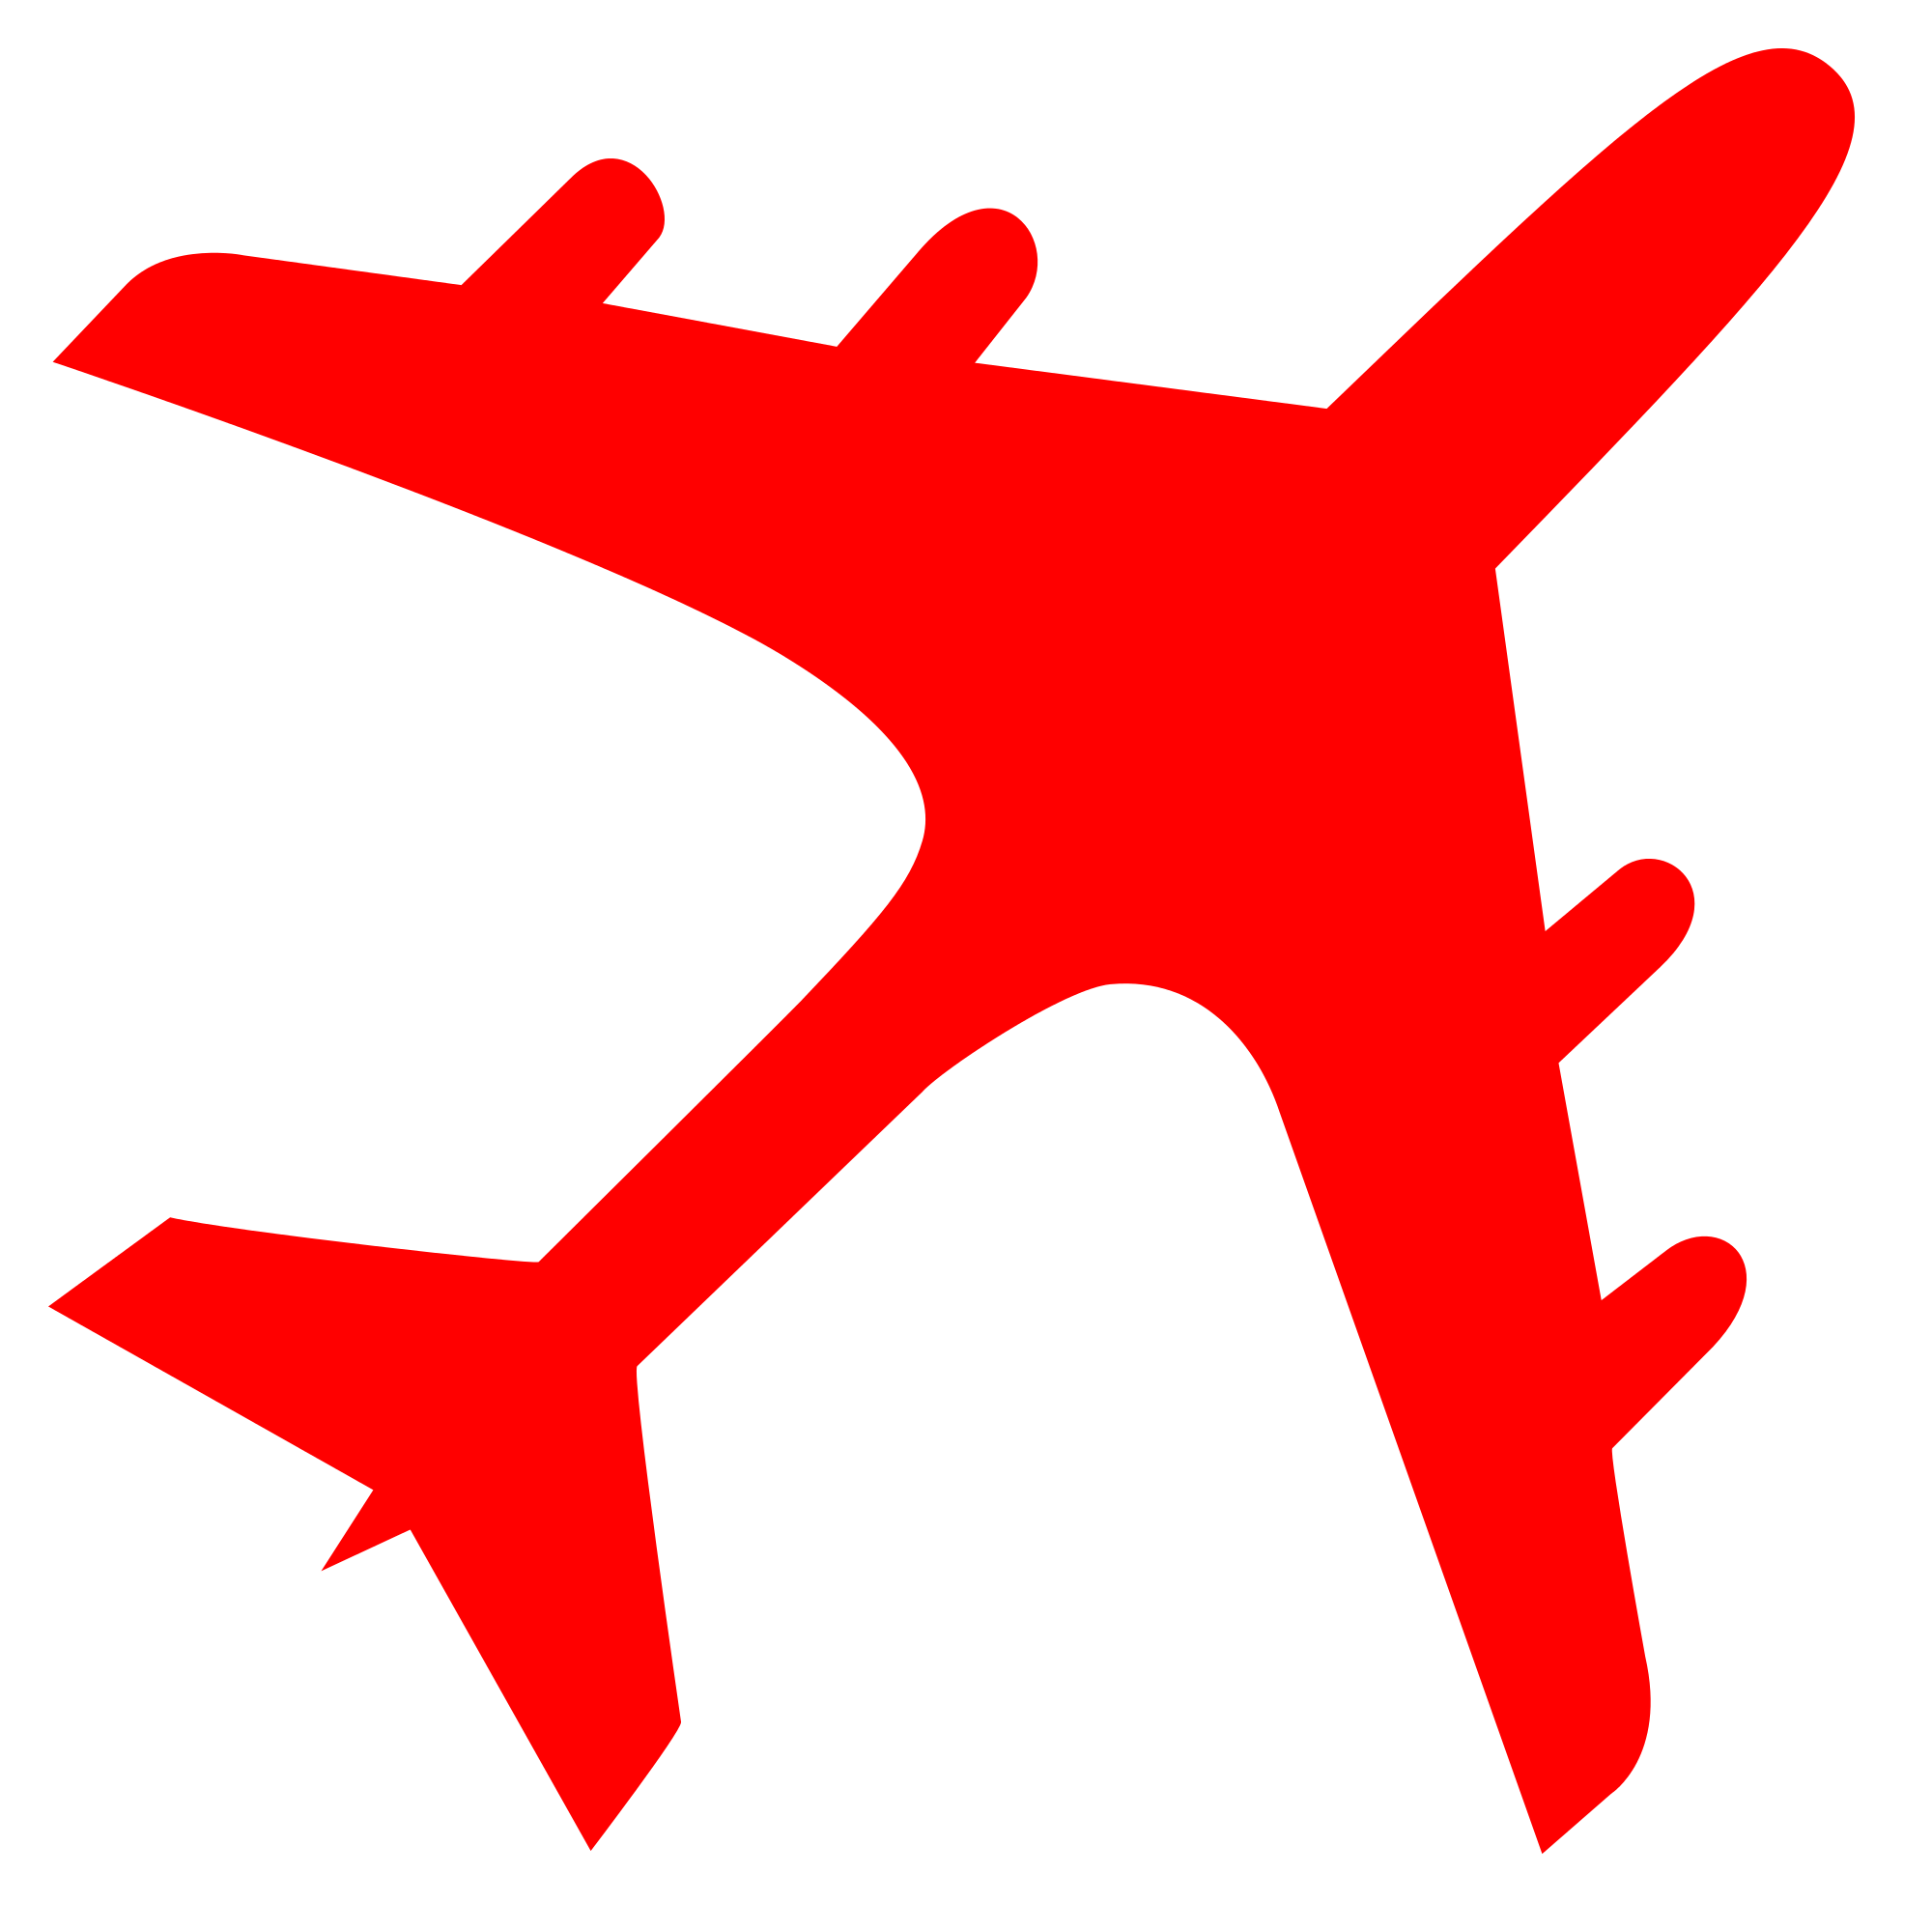 2000x2000 Fileairplane Silhouette Red.svg